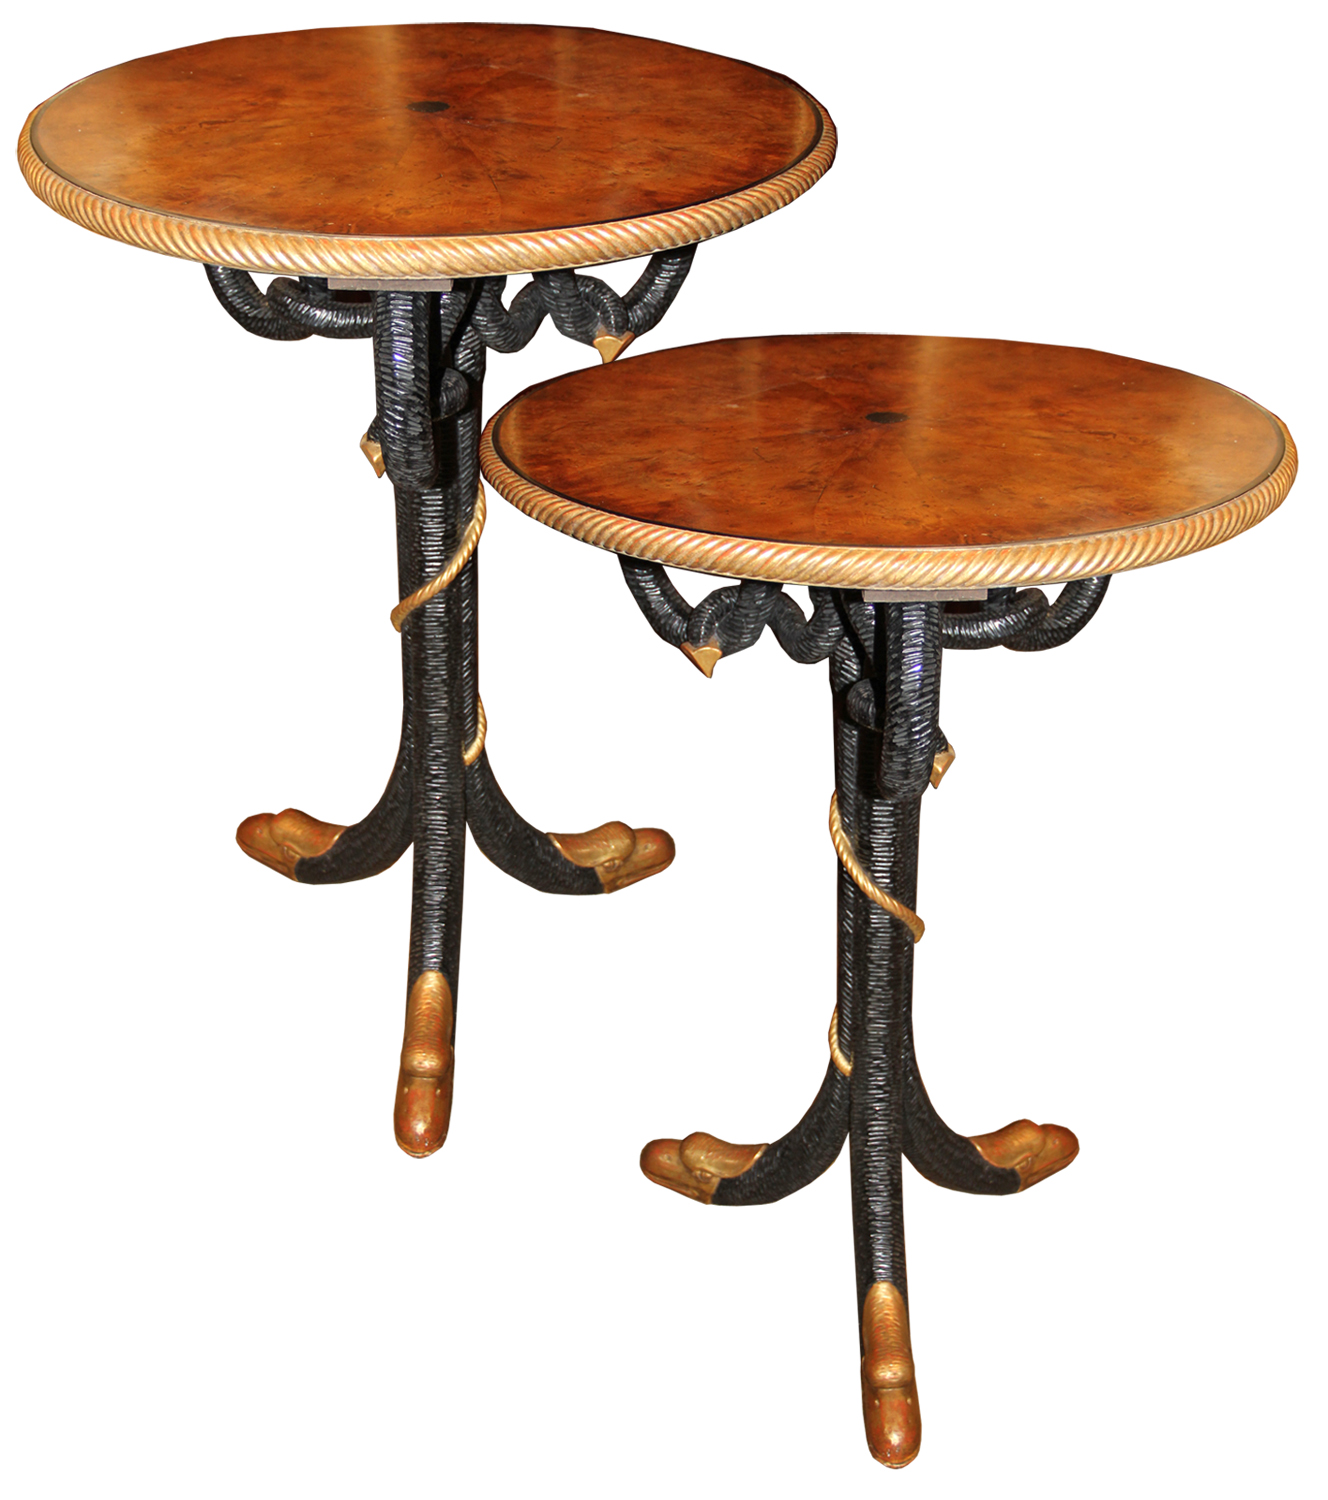 An Unusual Pair of 19th Century Italian Burl Elmwood, Ebonized and Parcel-Gilt Side Tables No. 4516